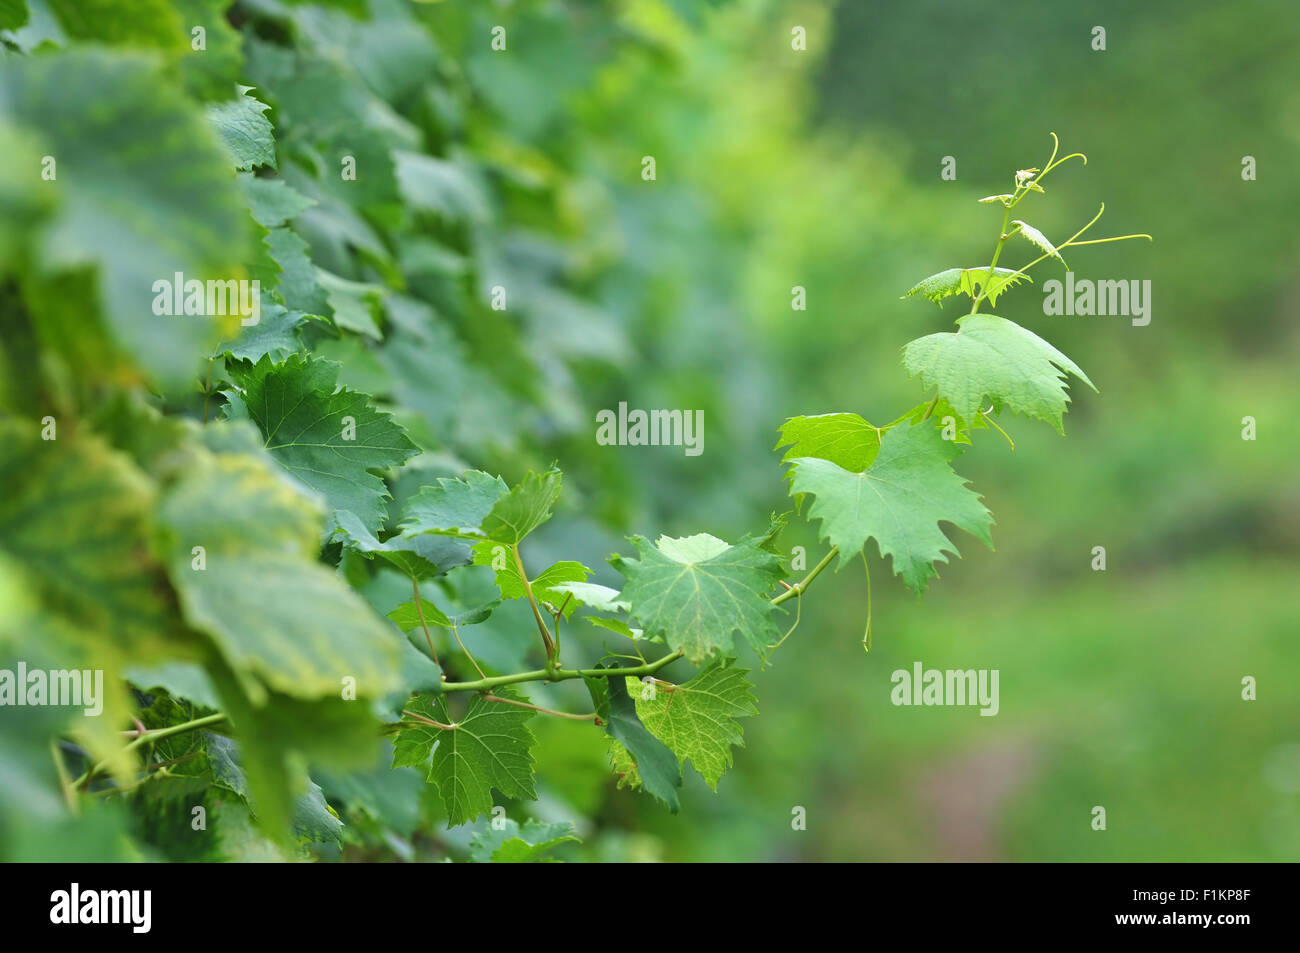 Grapevine twig - Stock Image